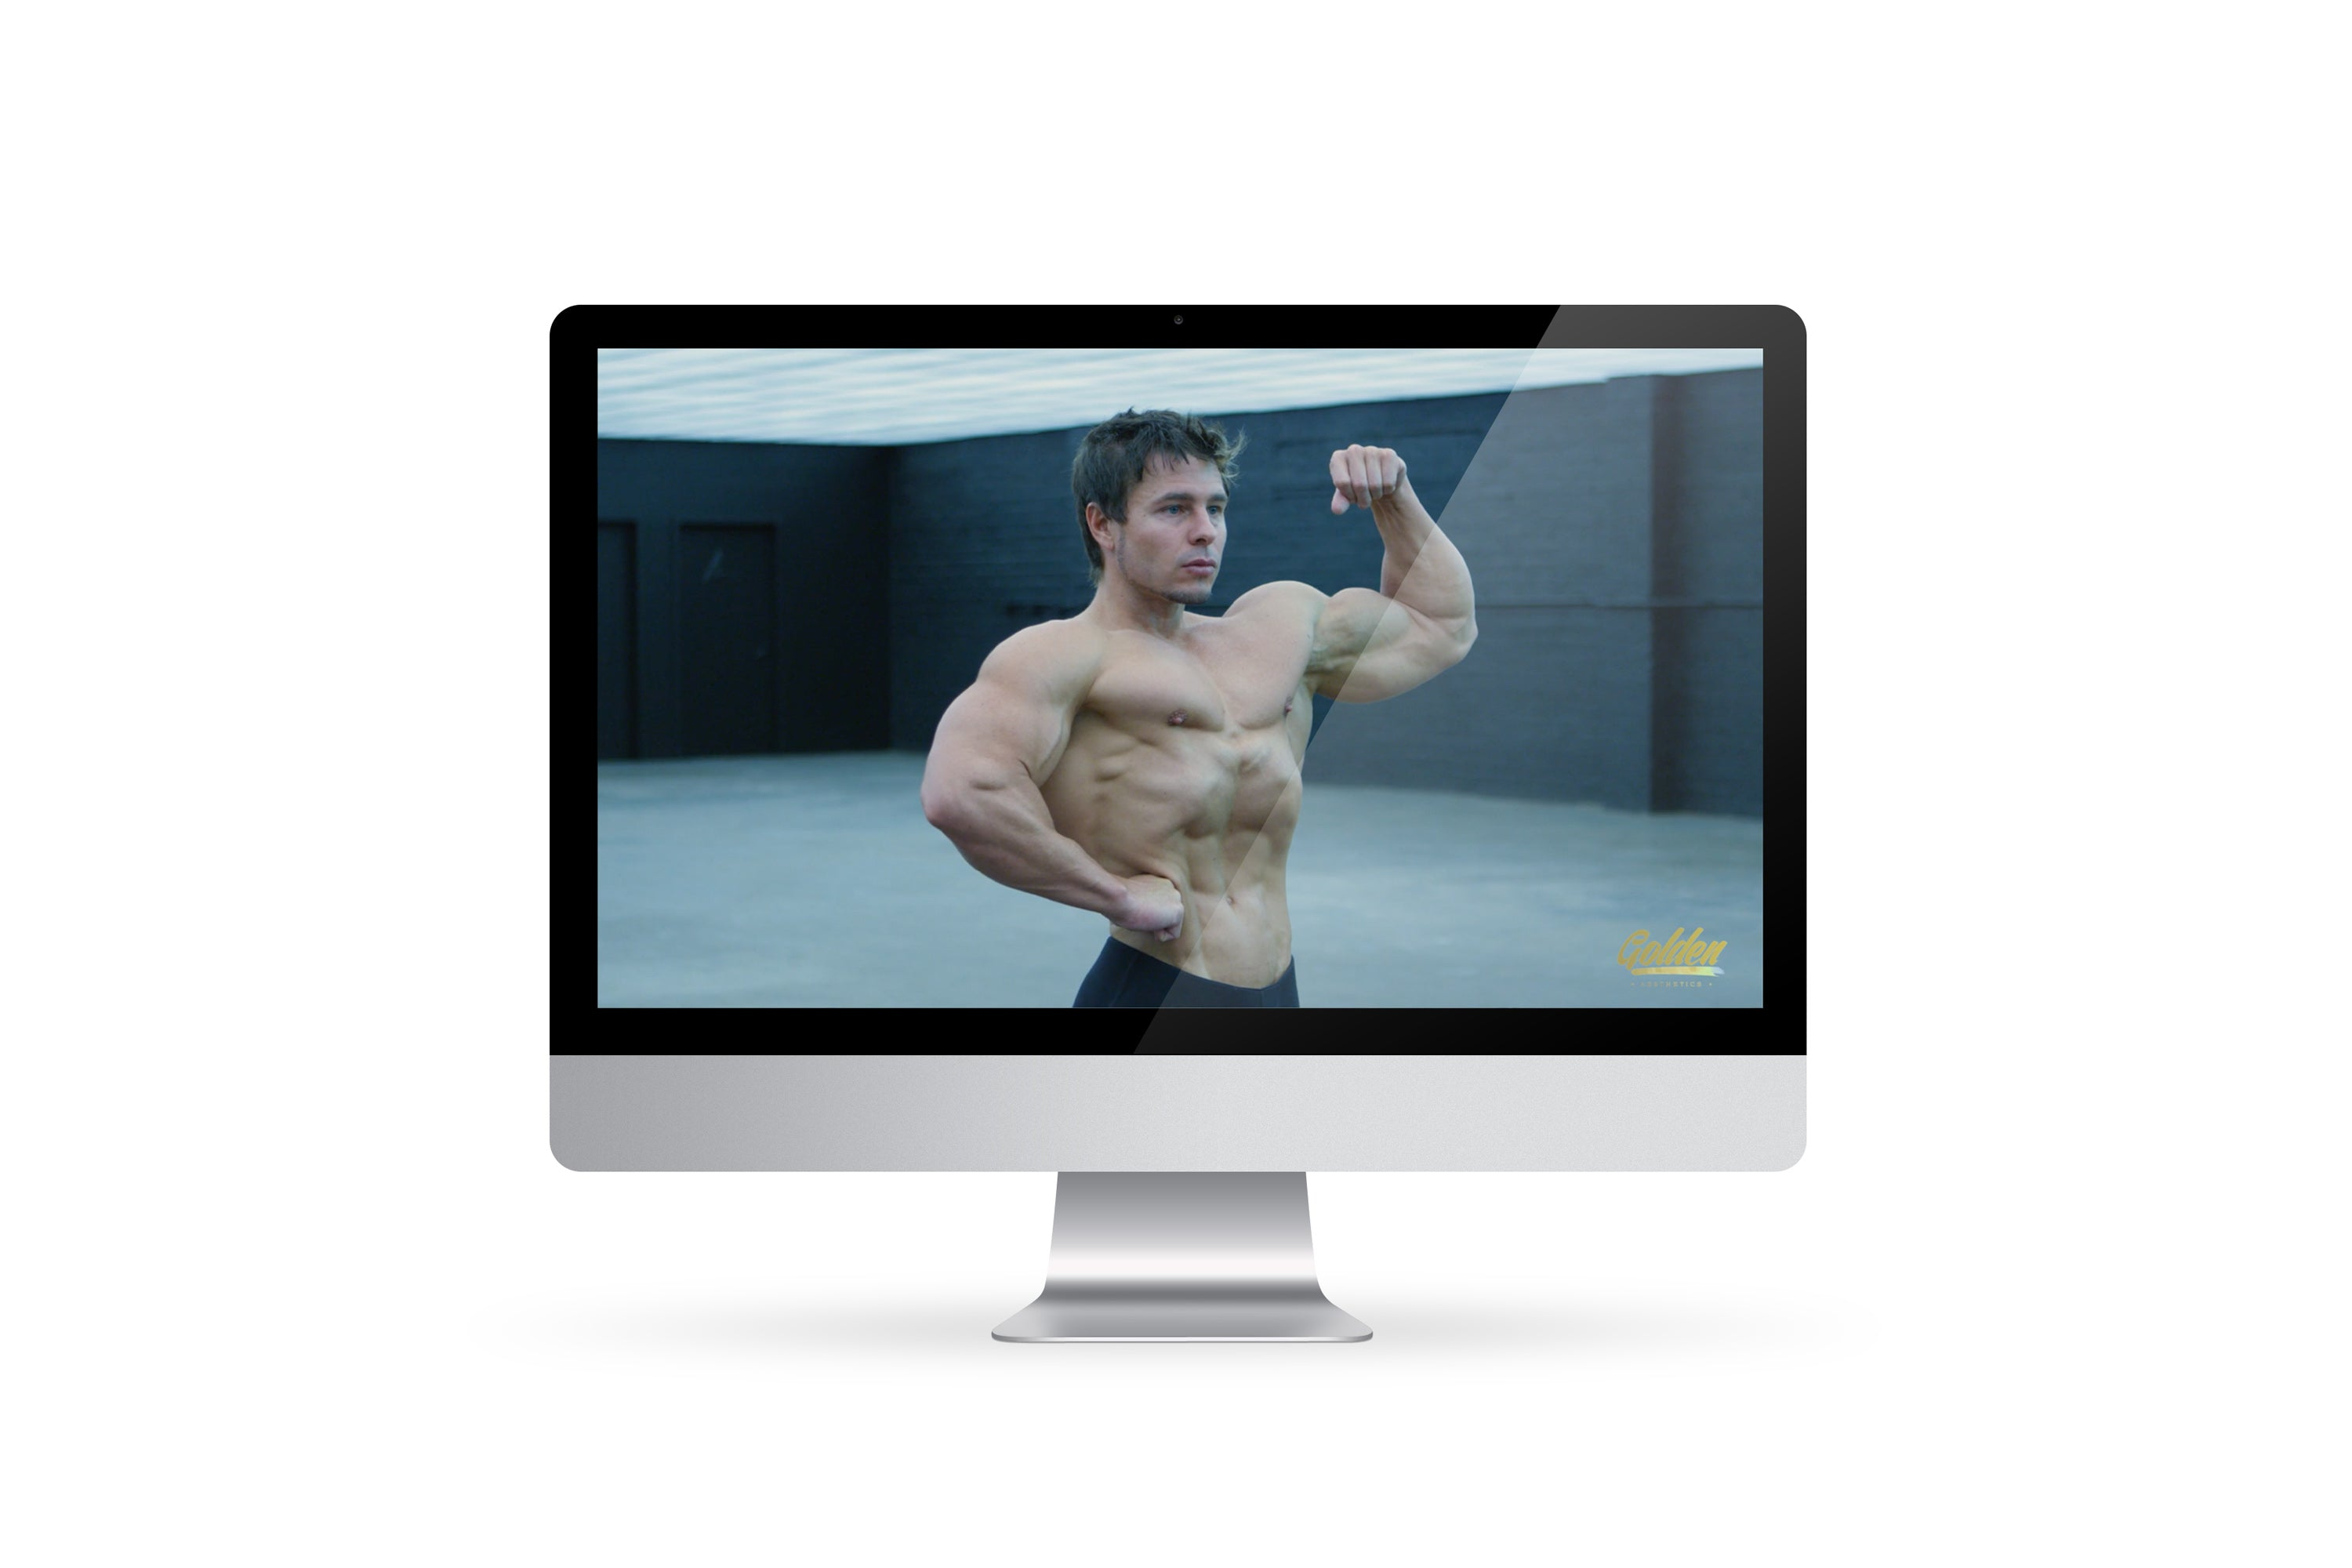 The Encyclopedia of Classic Physique & Bodybuilding Posing - Video Guide - Golden Aesthetics